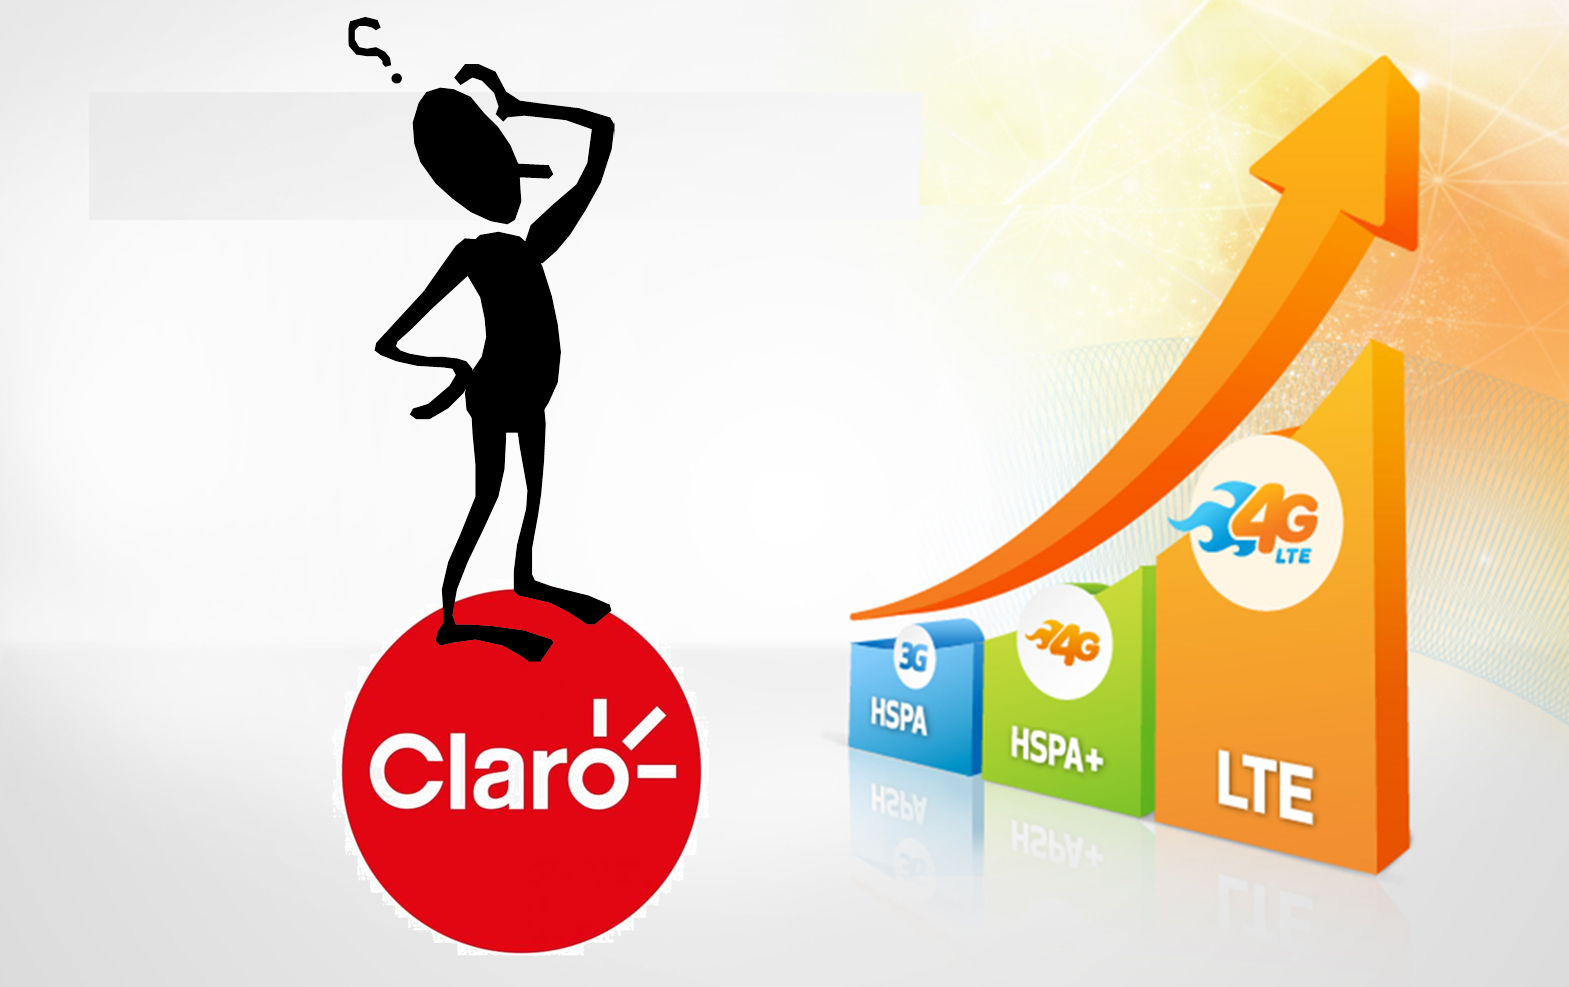 alternativas claro LTE